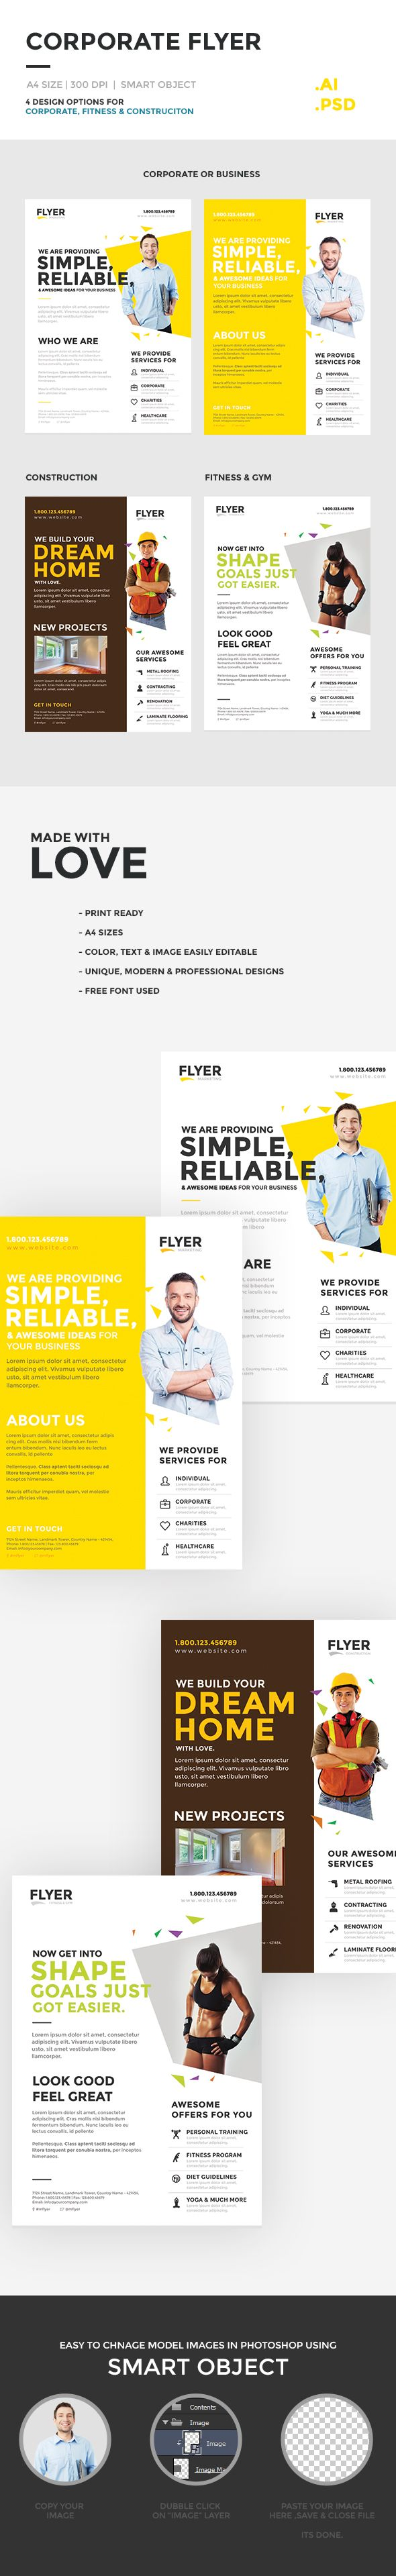 Best Corporate Flyer Template Images On Pinterest Corporate - Real estate photography flyer templates